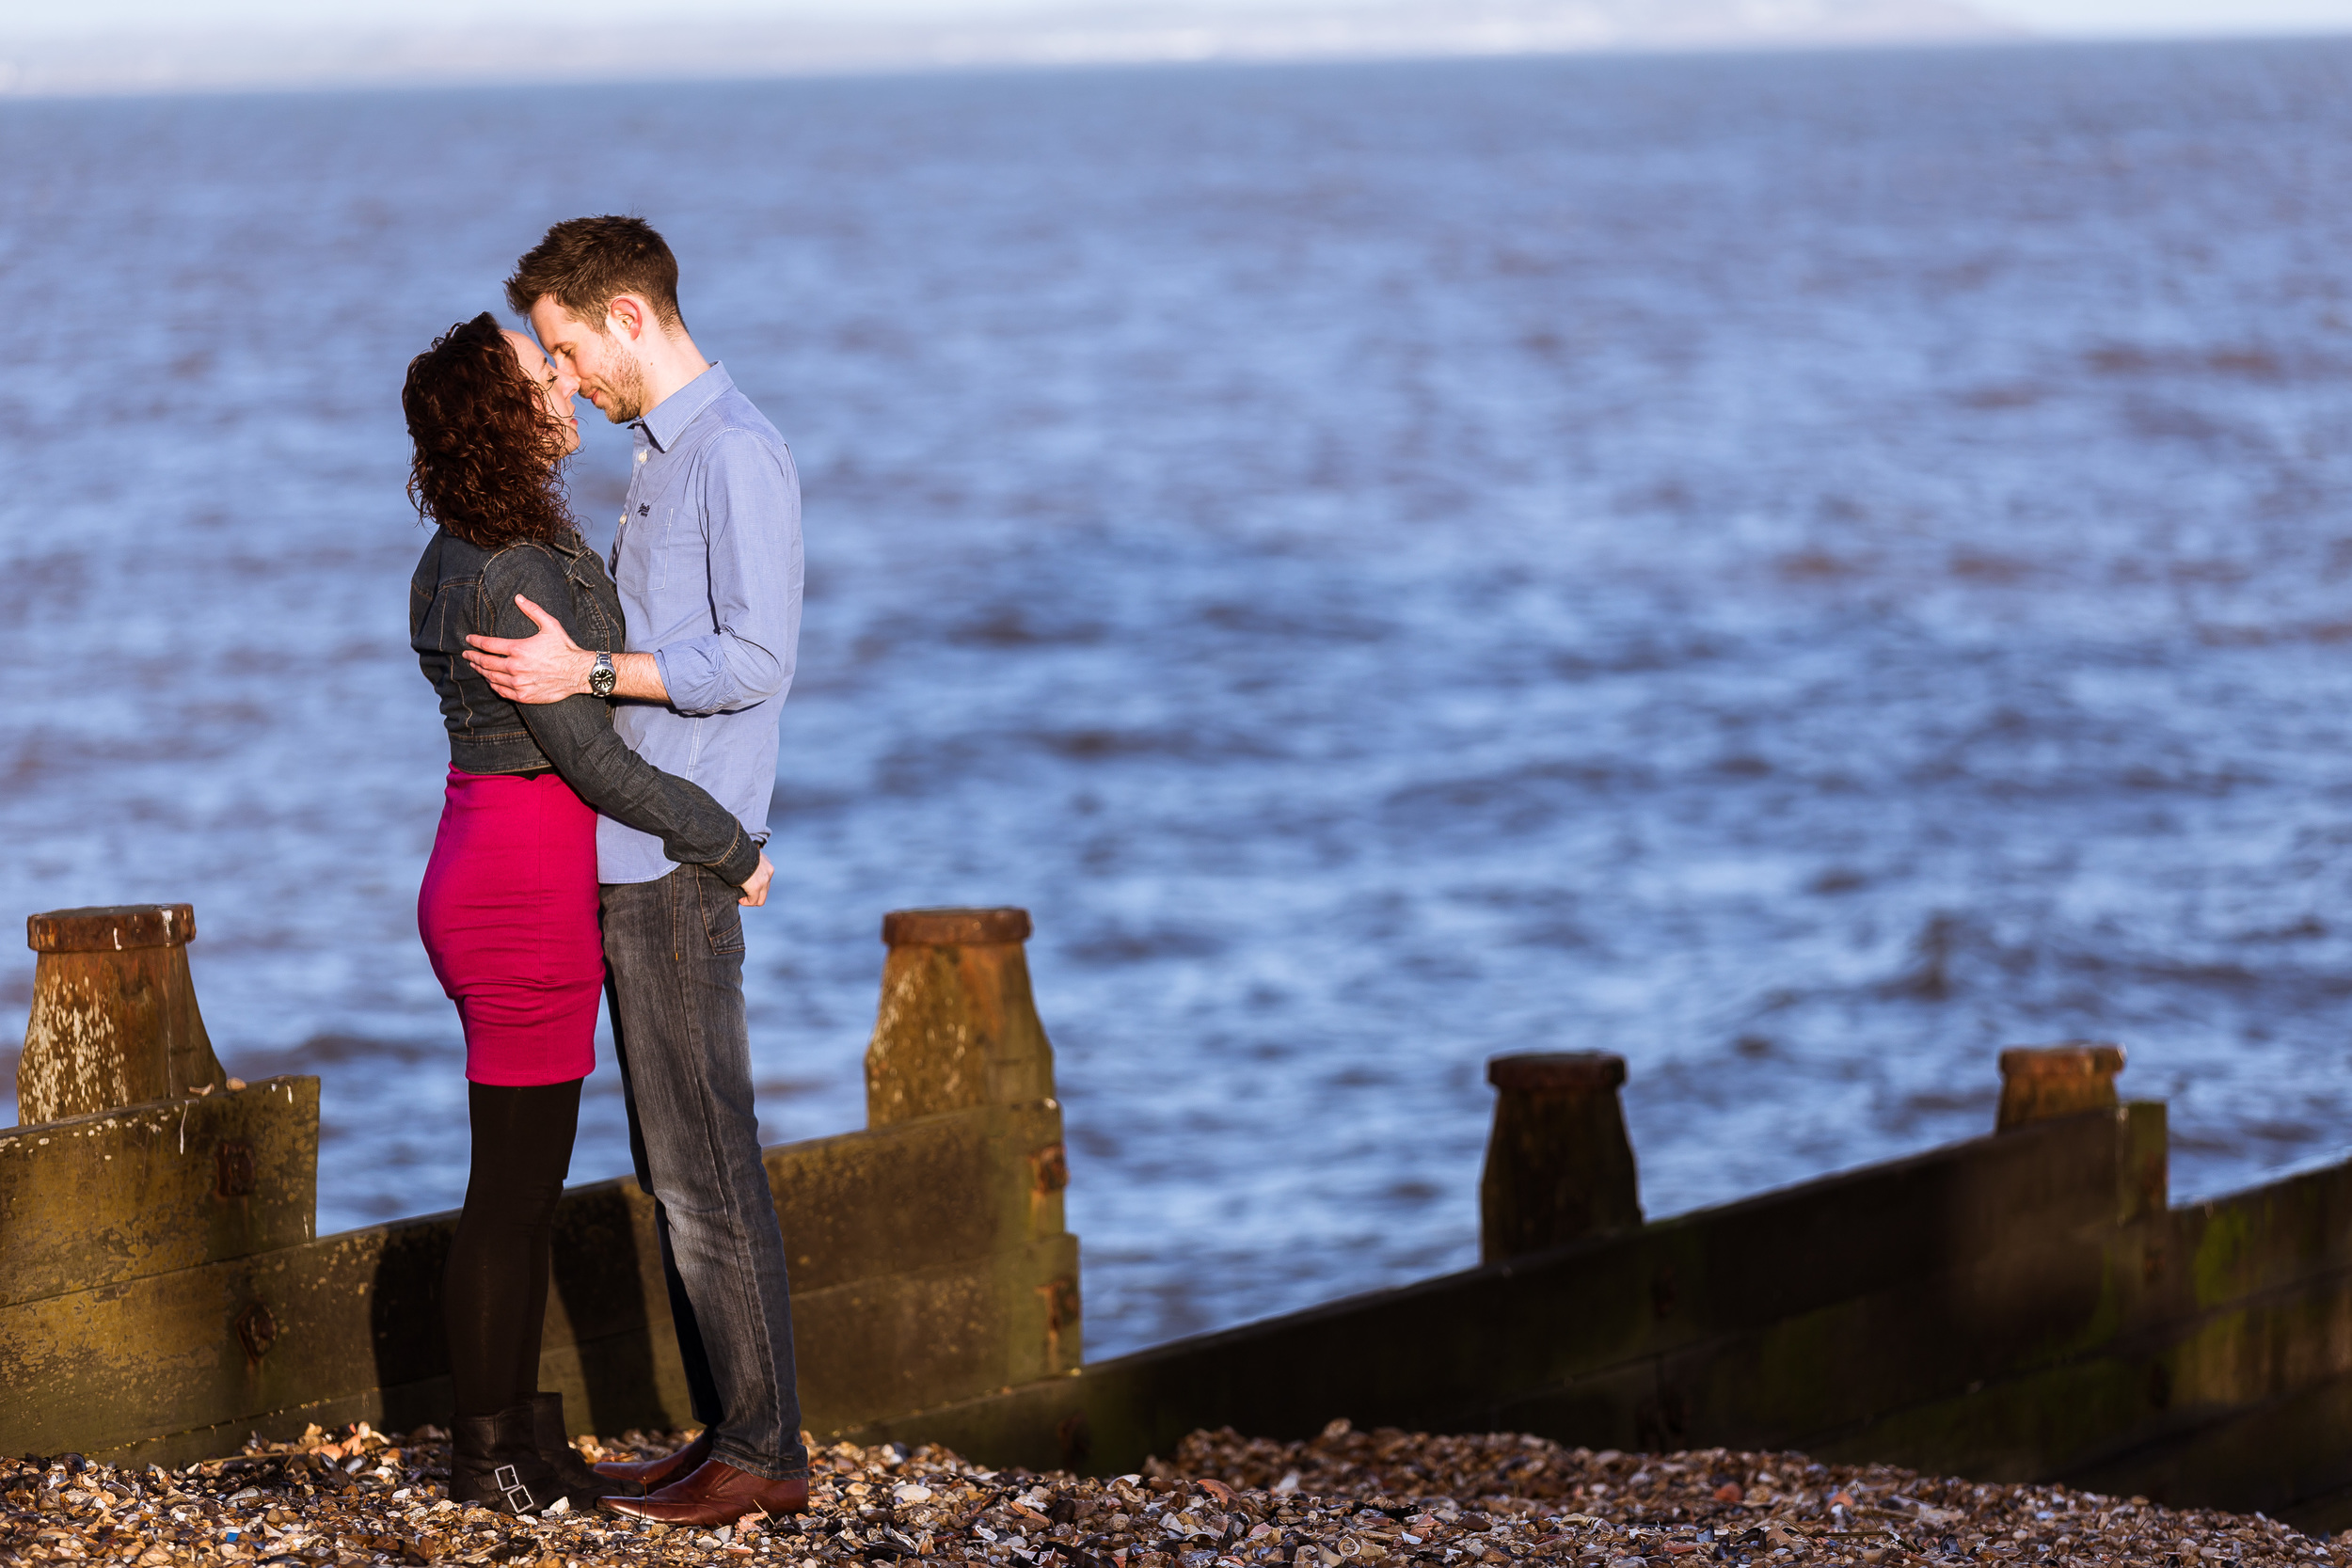 An image from a portrait session I have with an amazingly fun couple in Whitstable.